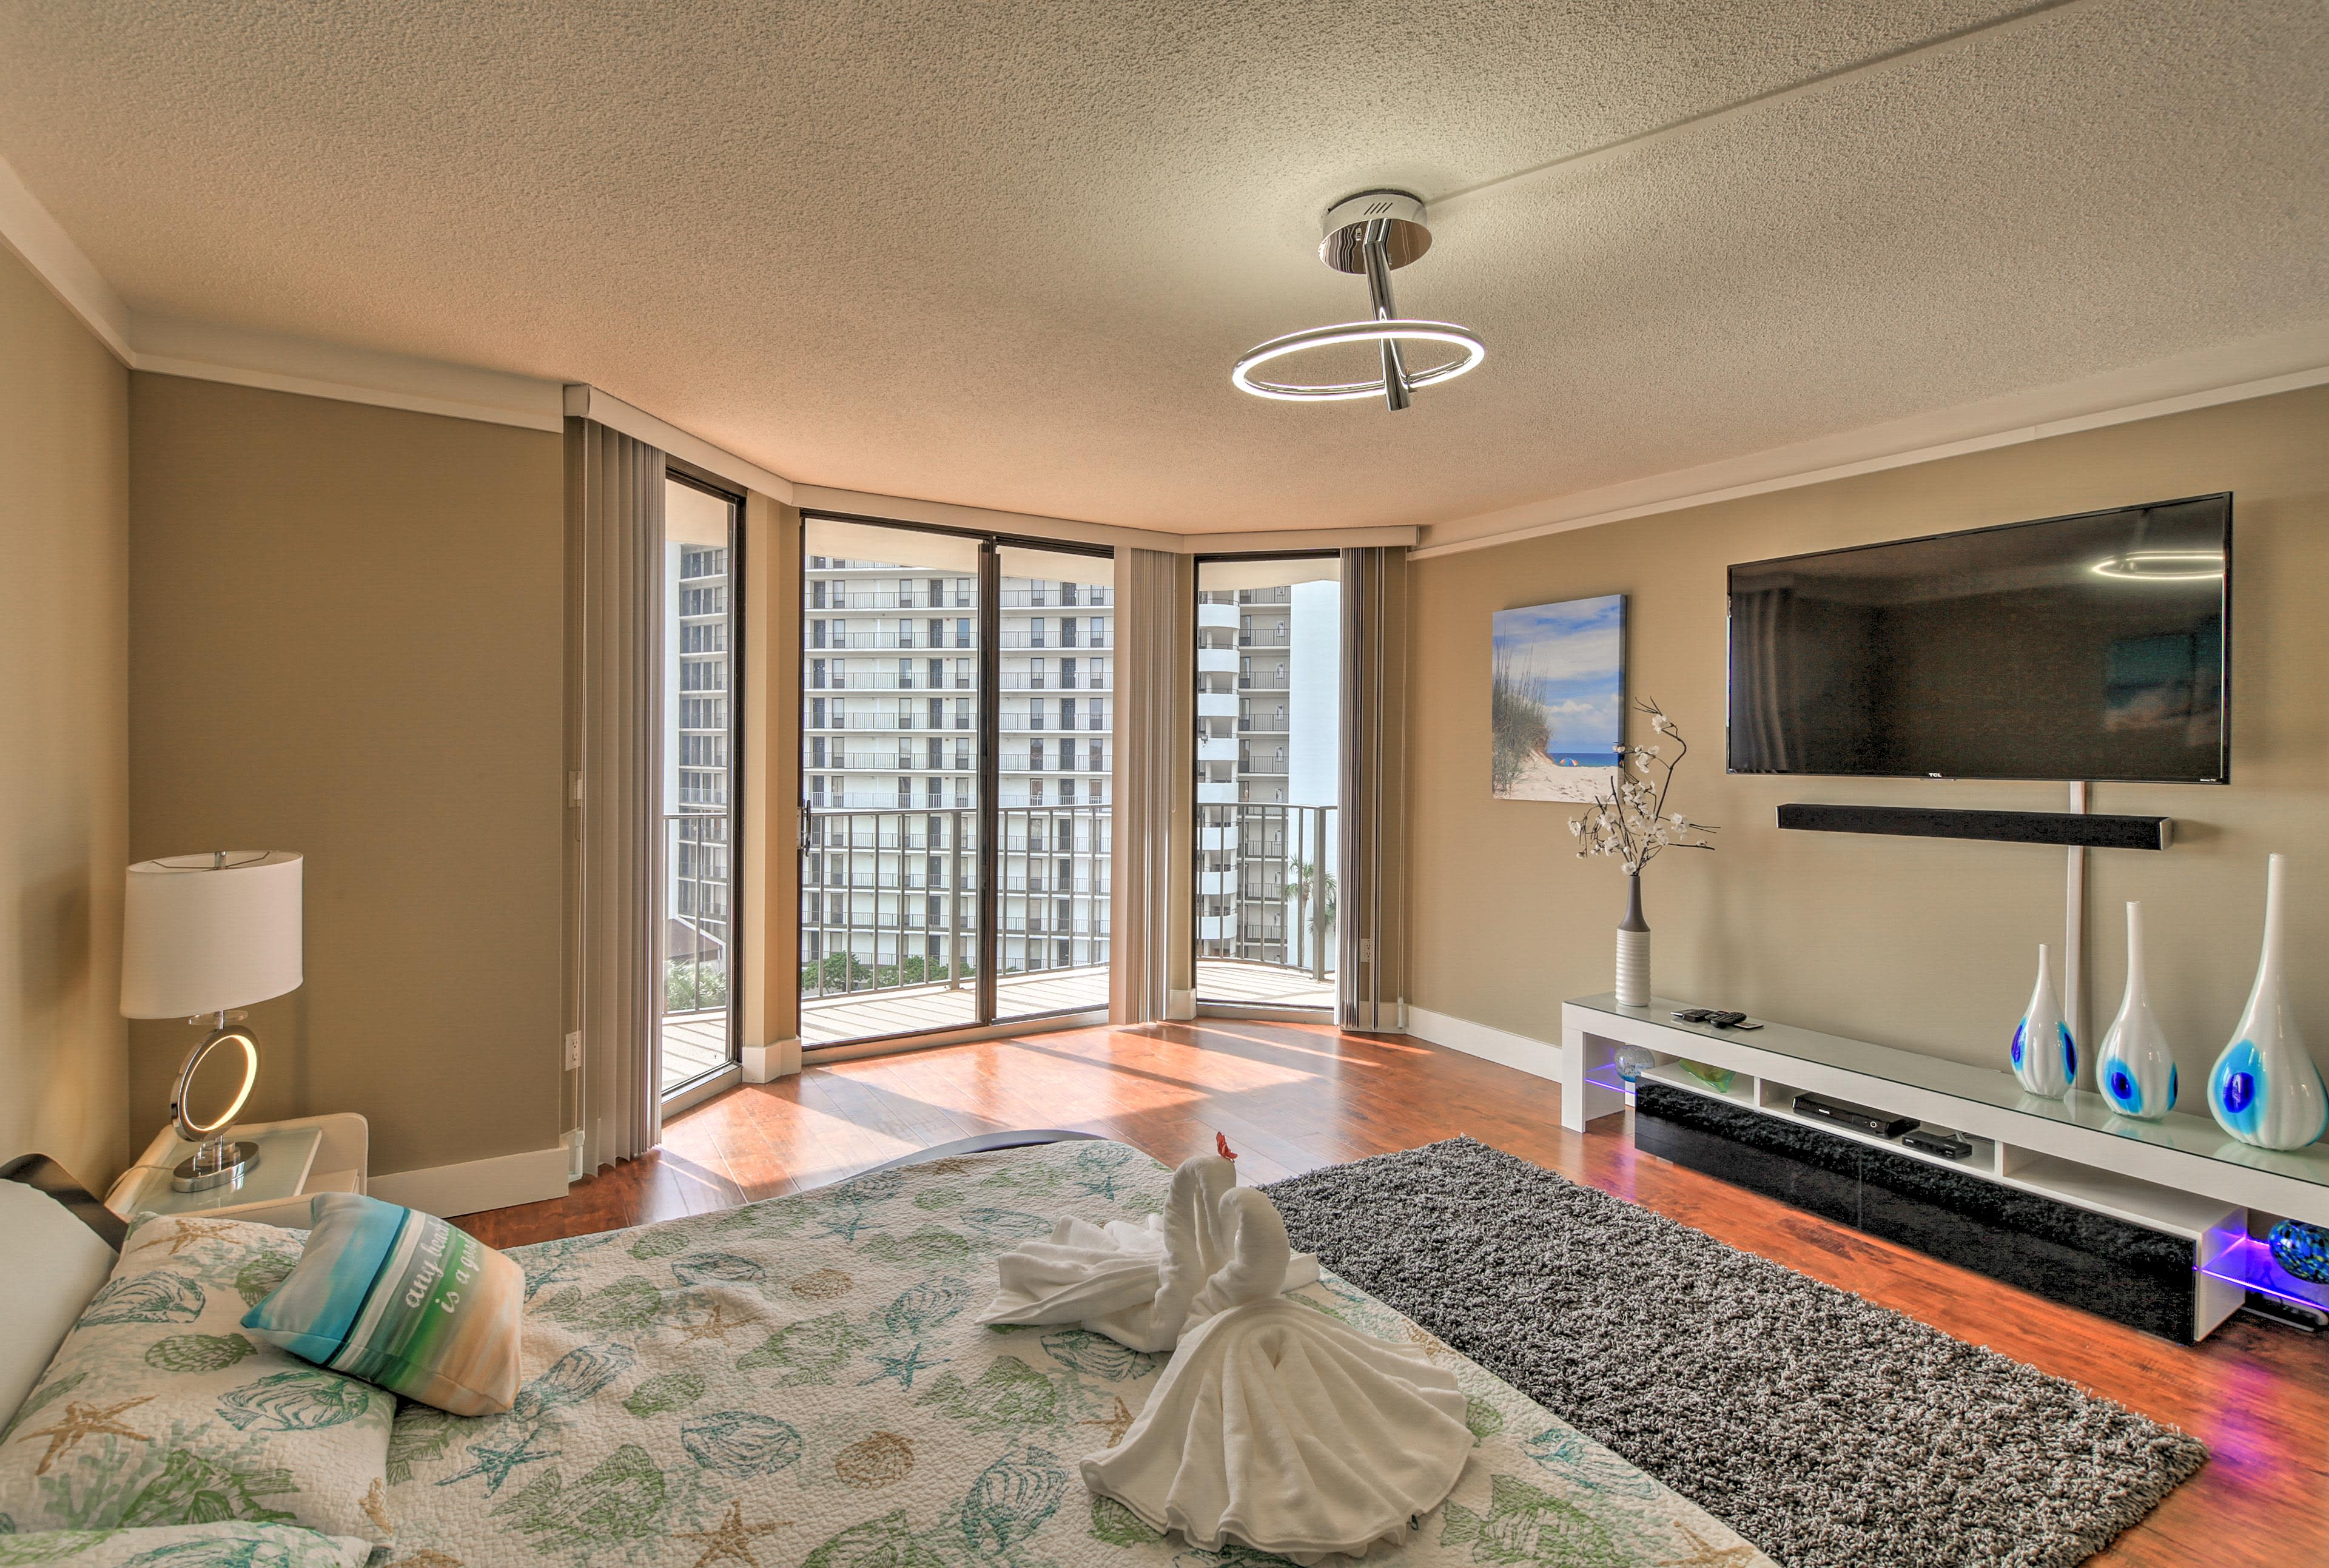 The master bedroom features a king bed and sliding doors to access the balcony.